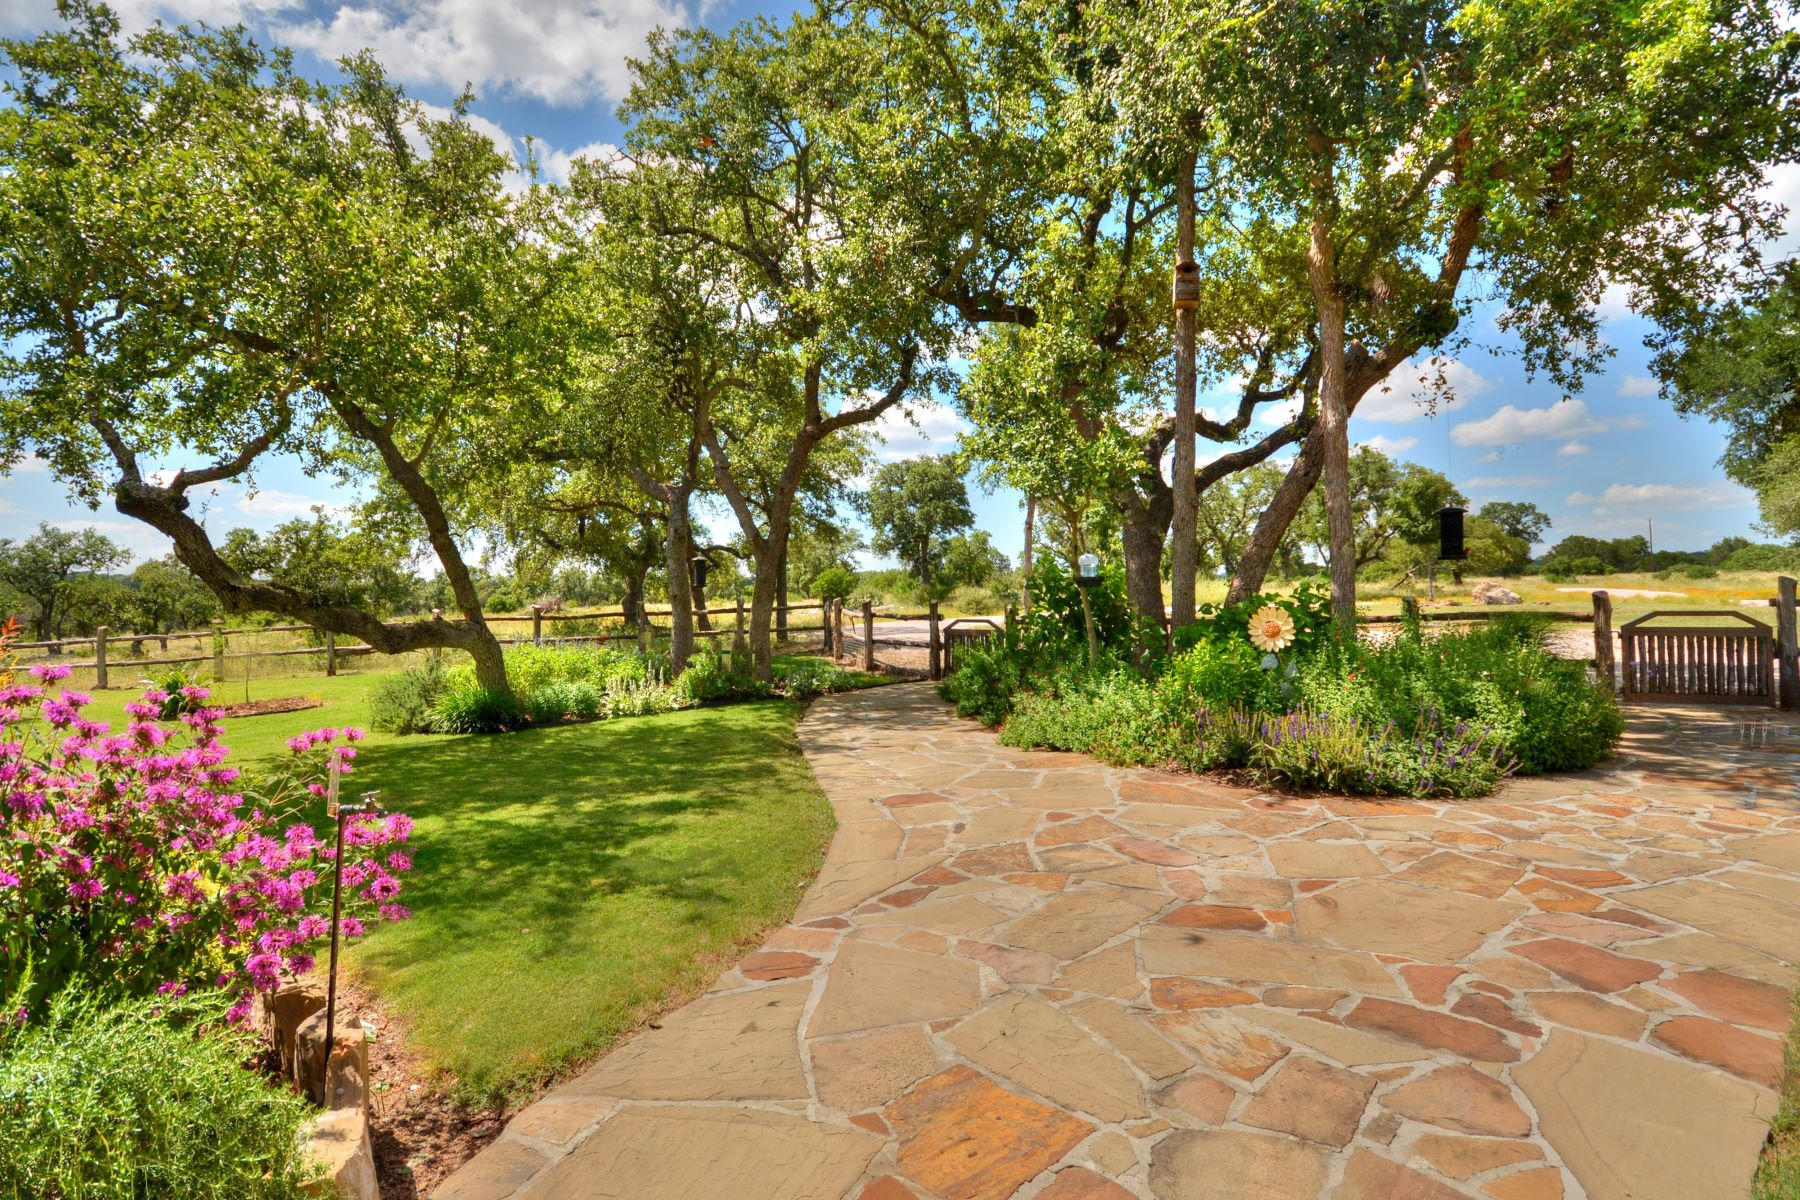 Additional photo for property listing at 21.73± Acres - Wolf Creek Ranch 3401 Wolf Creek Ranch Road Burnet, Texas 78611 United States